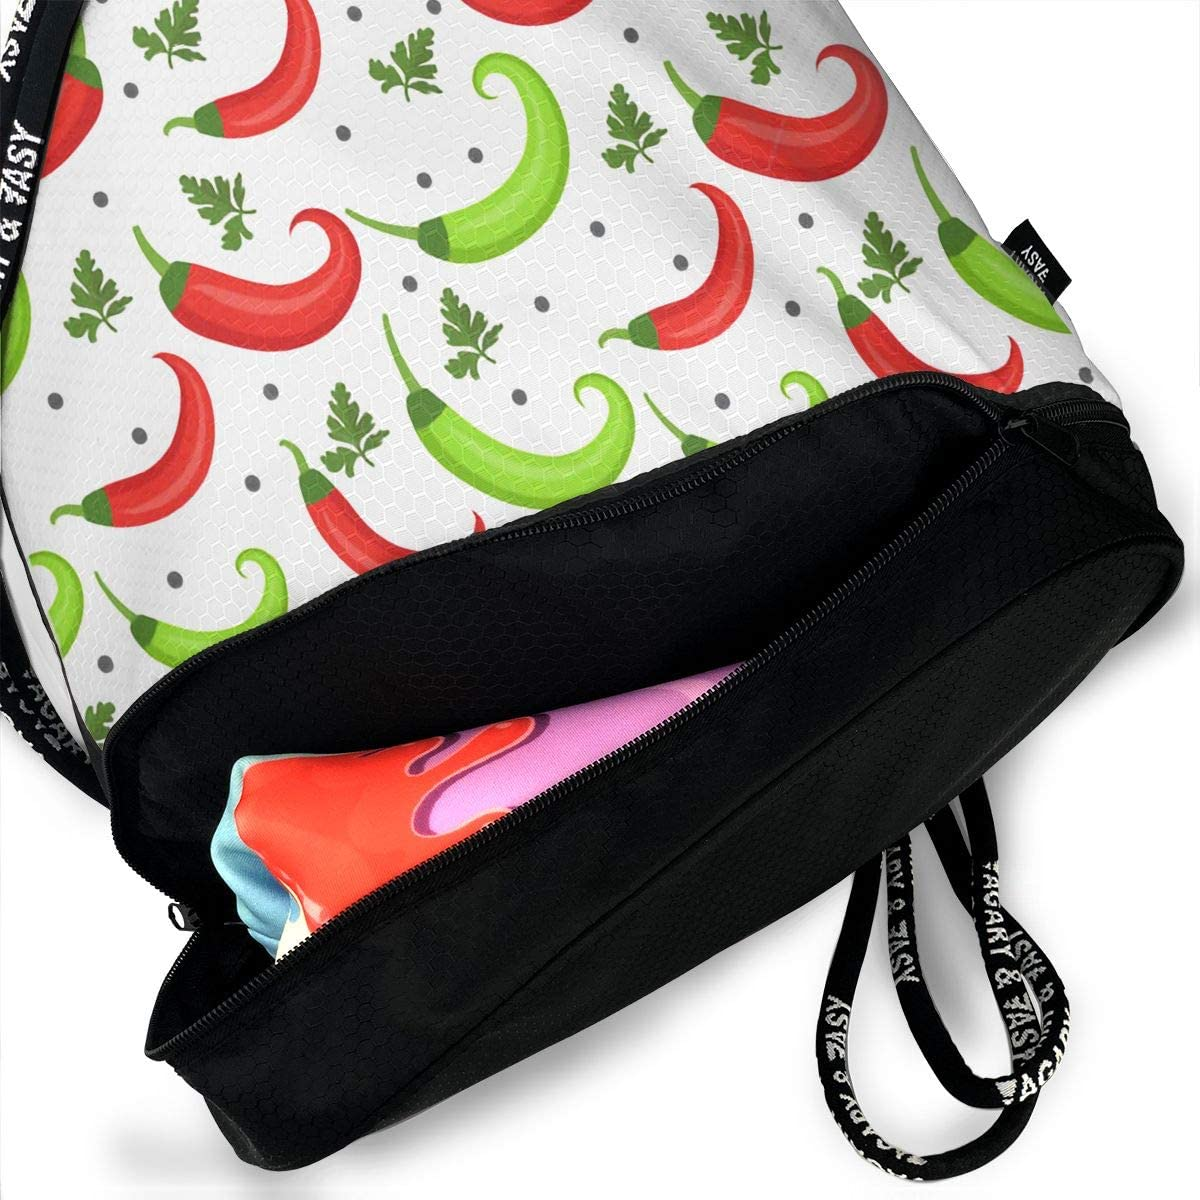 Drawstring Backpack Chilli Hot Pepper Gym Bag